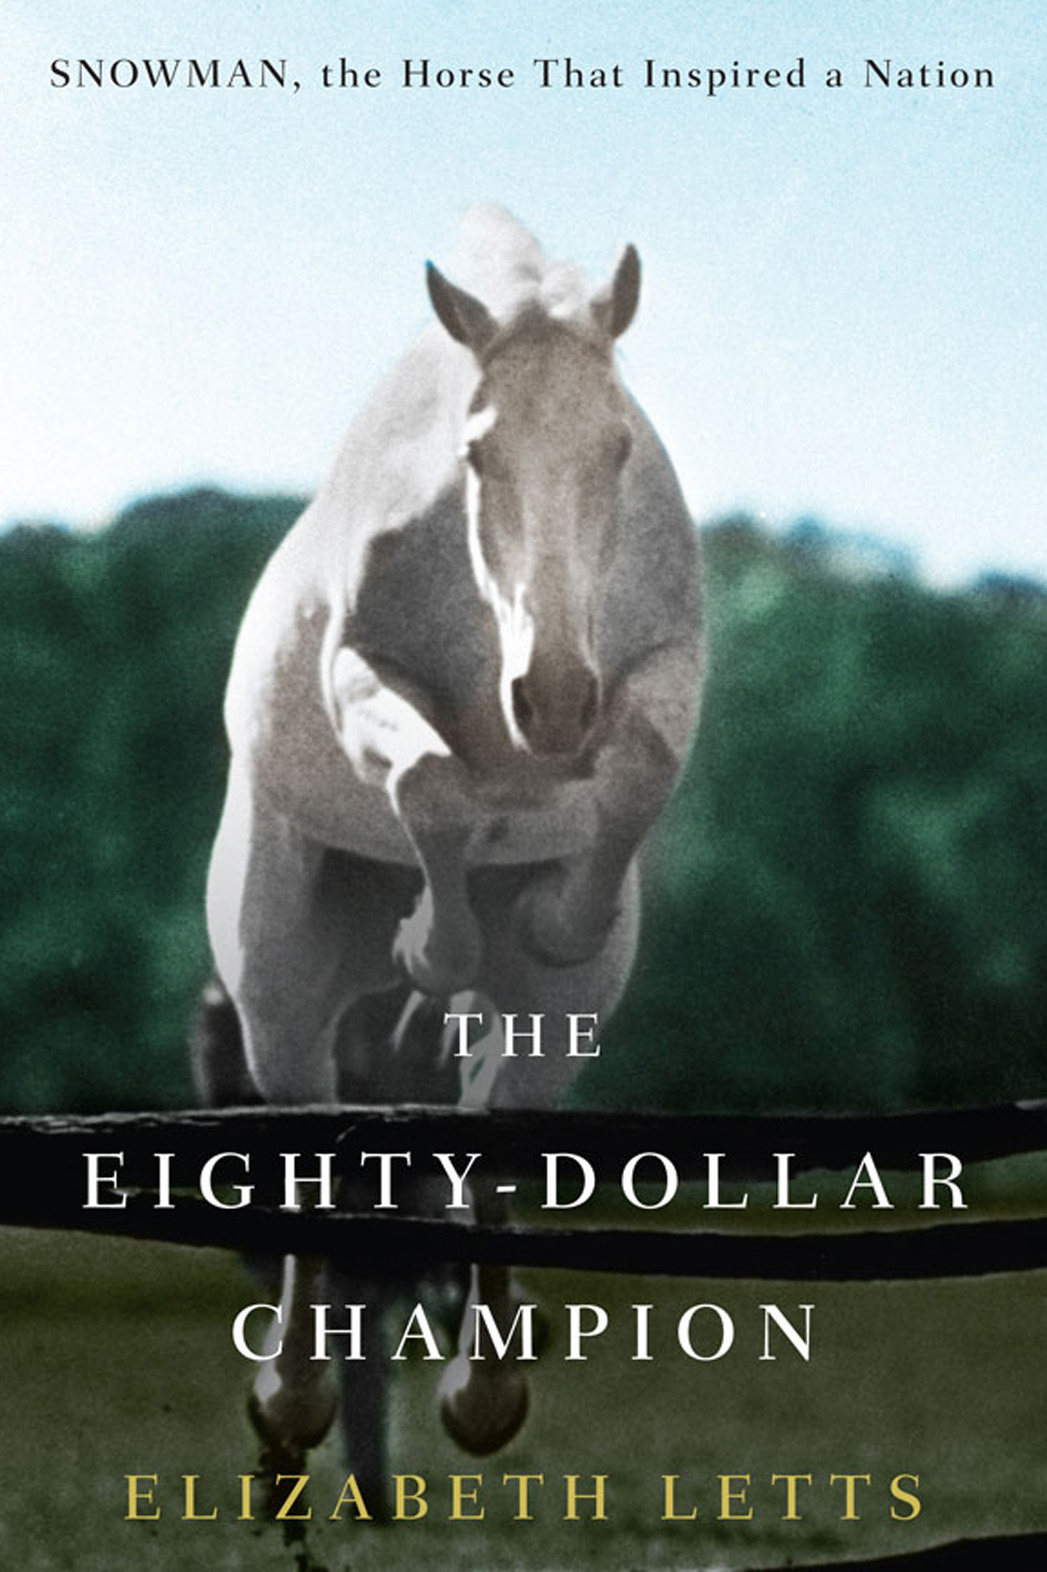 The Eighty-Dollar Champion Cover - P 2014